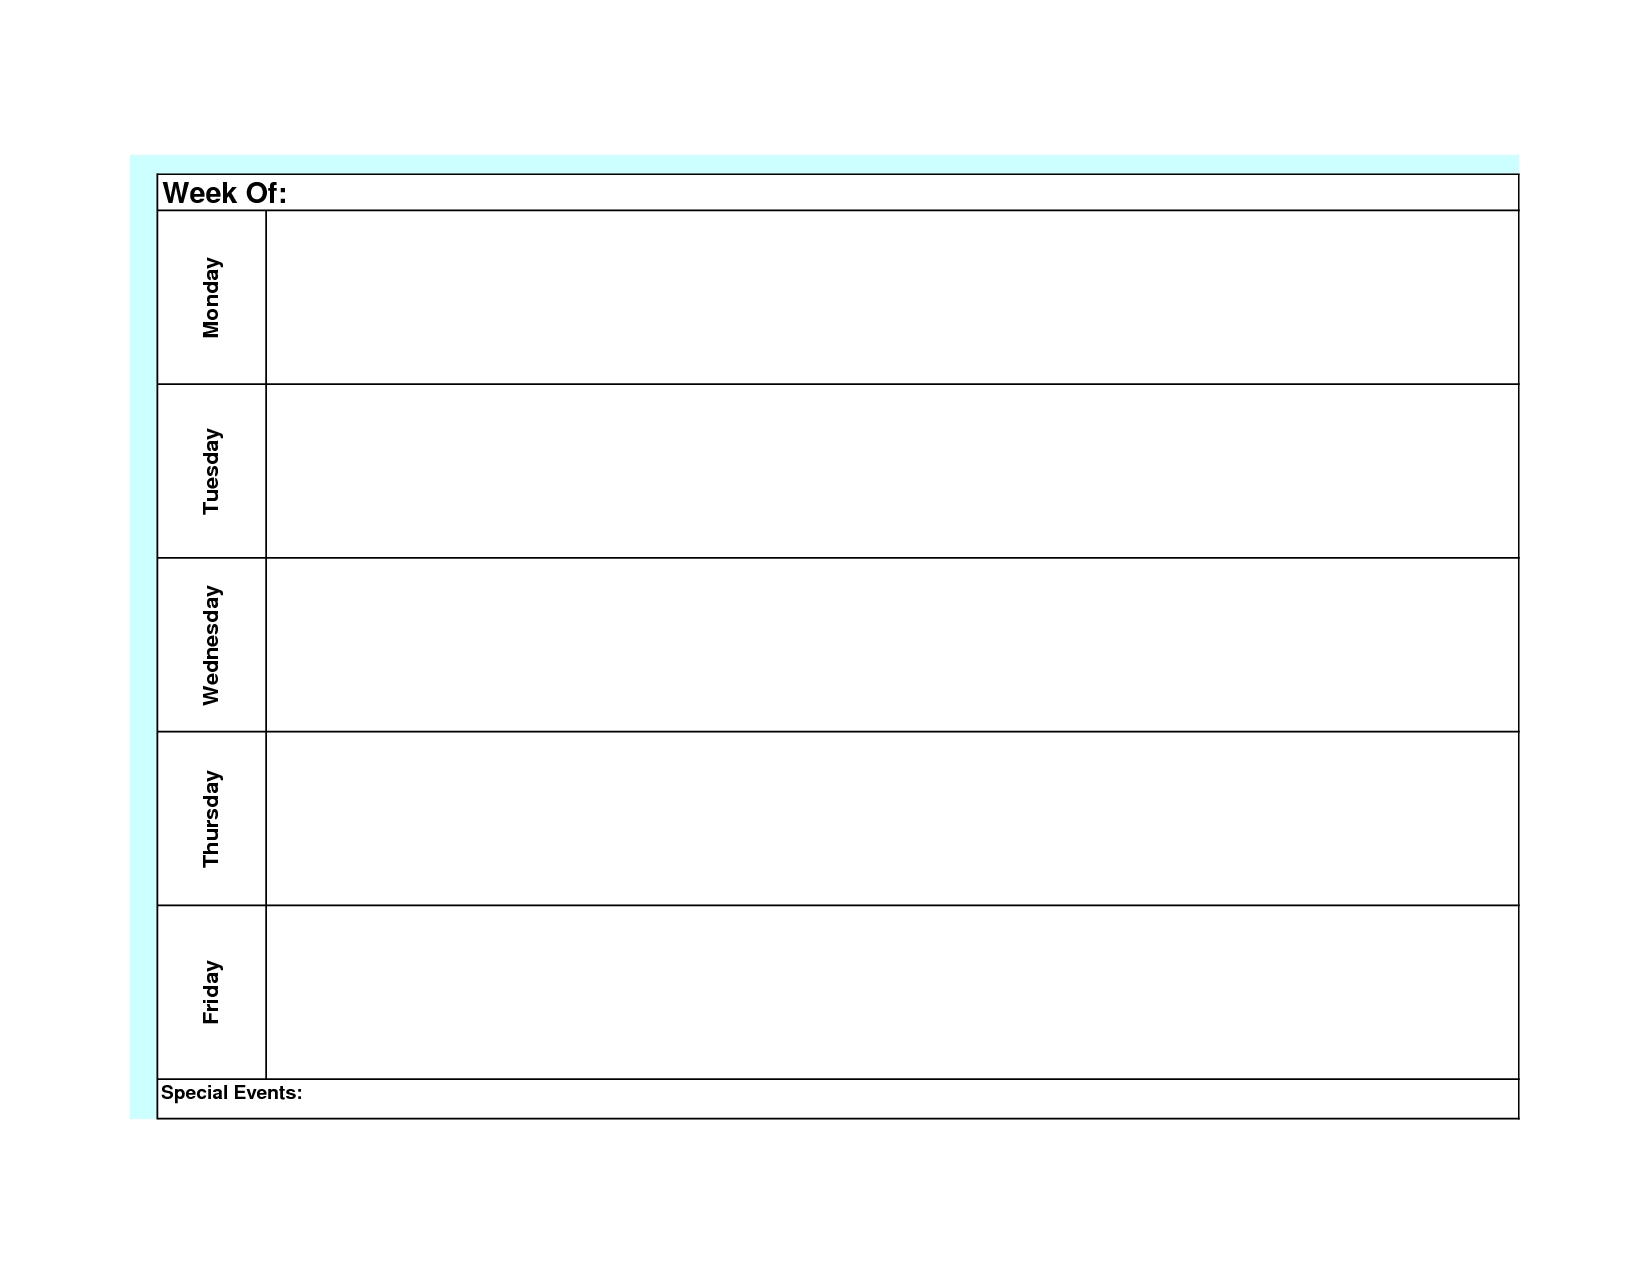 Blank Weekly Calendar Monday Through Friday Template Planner To | Smorad with regard to Monday Through Friday Planner Template